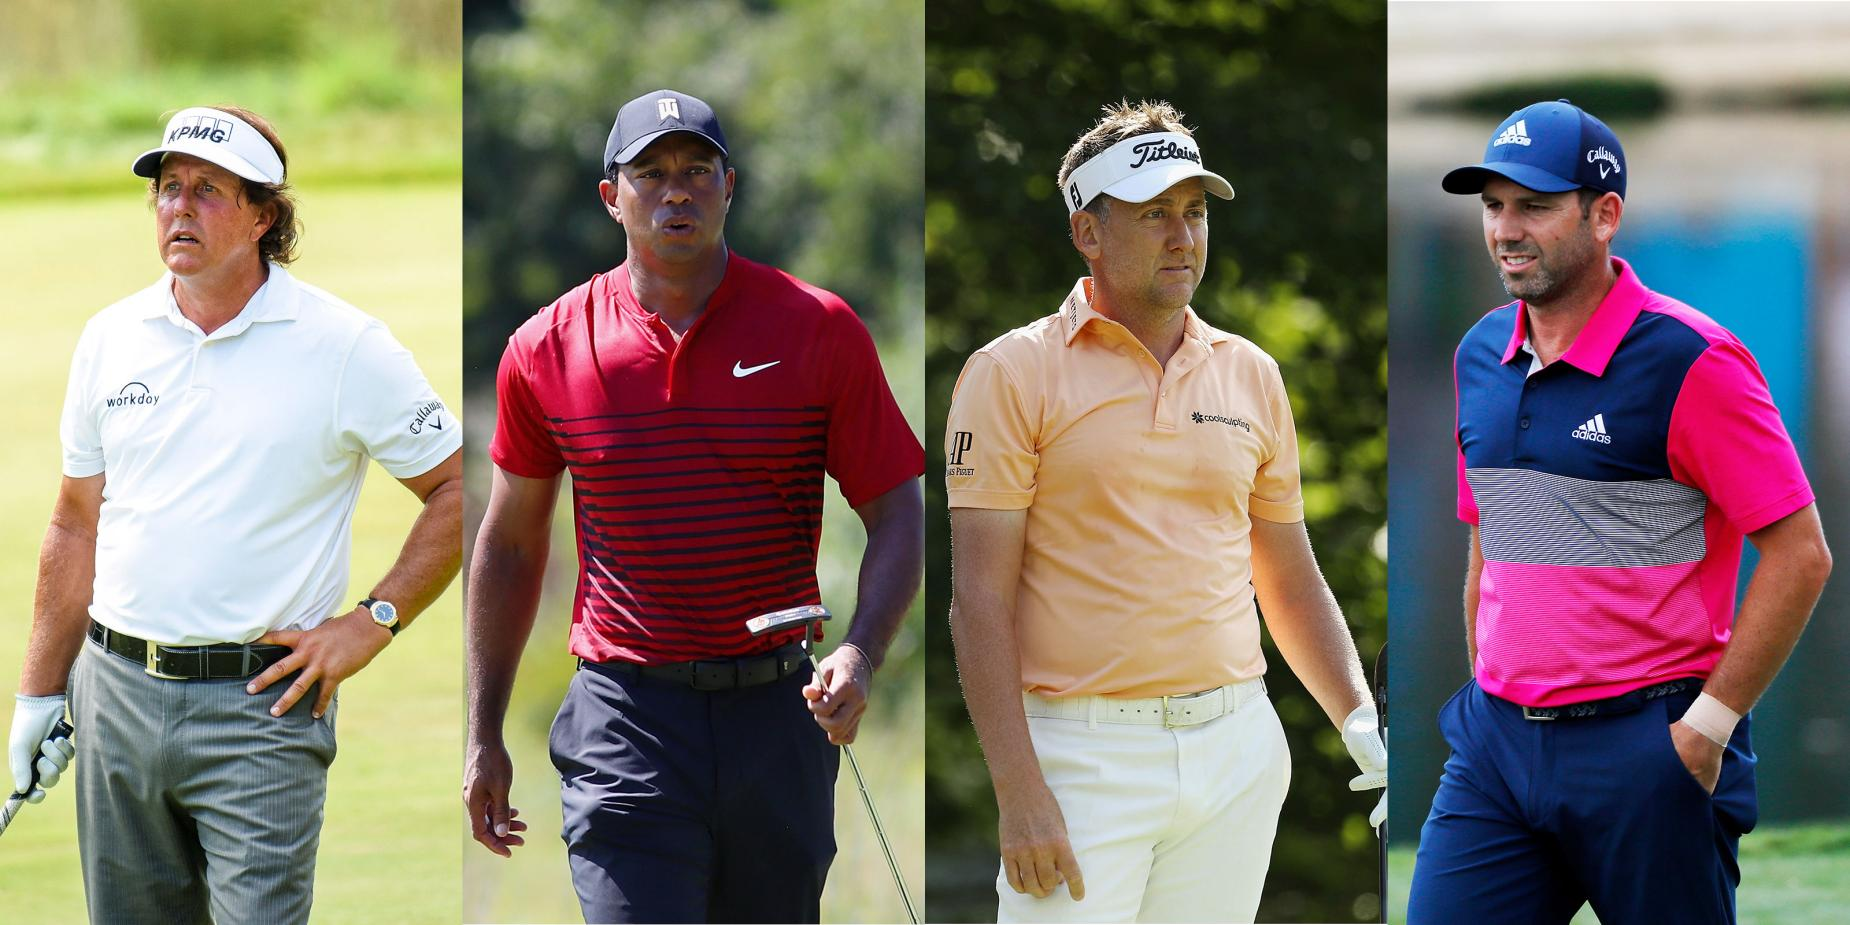 ryder-cup-captains-picks-preview-collage.jpg